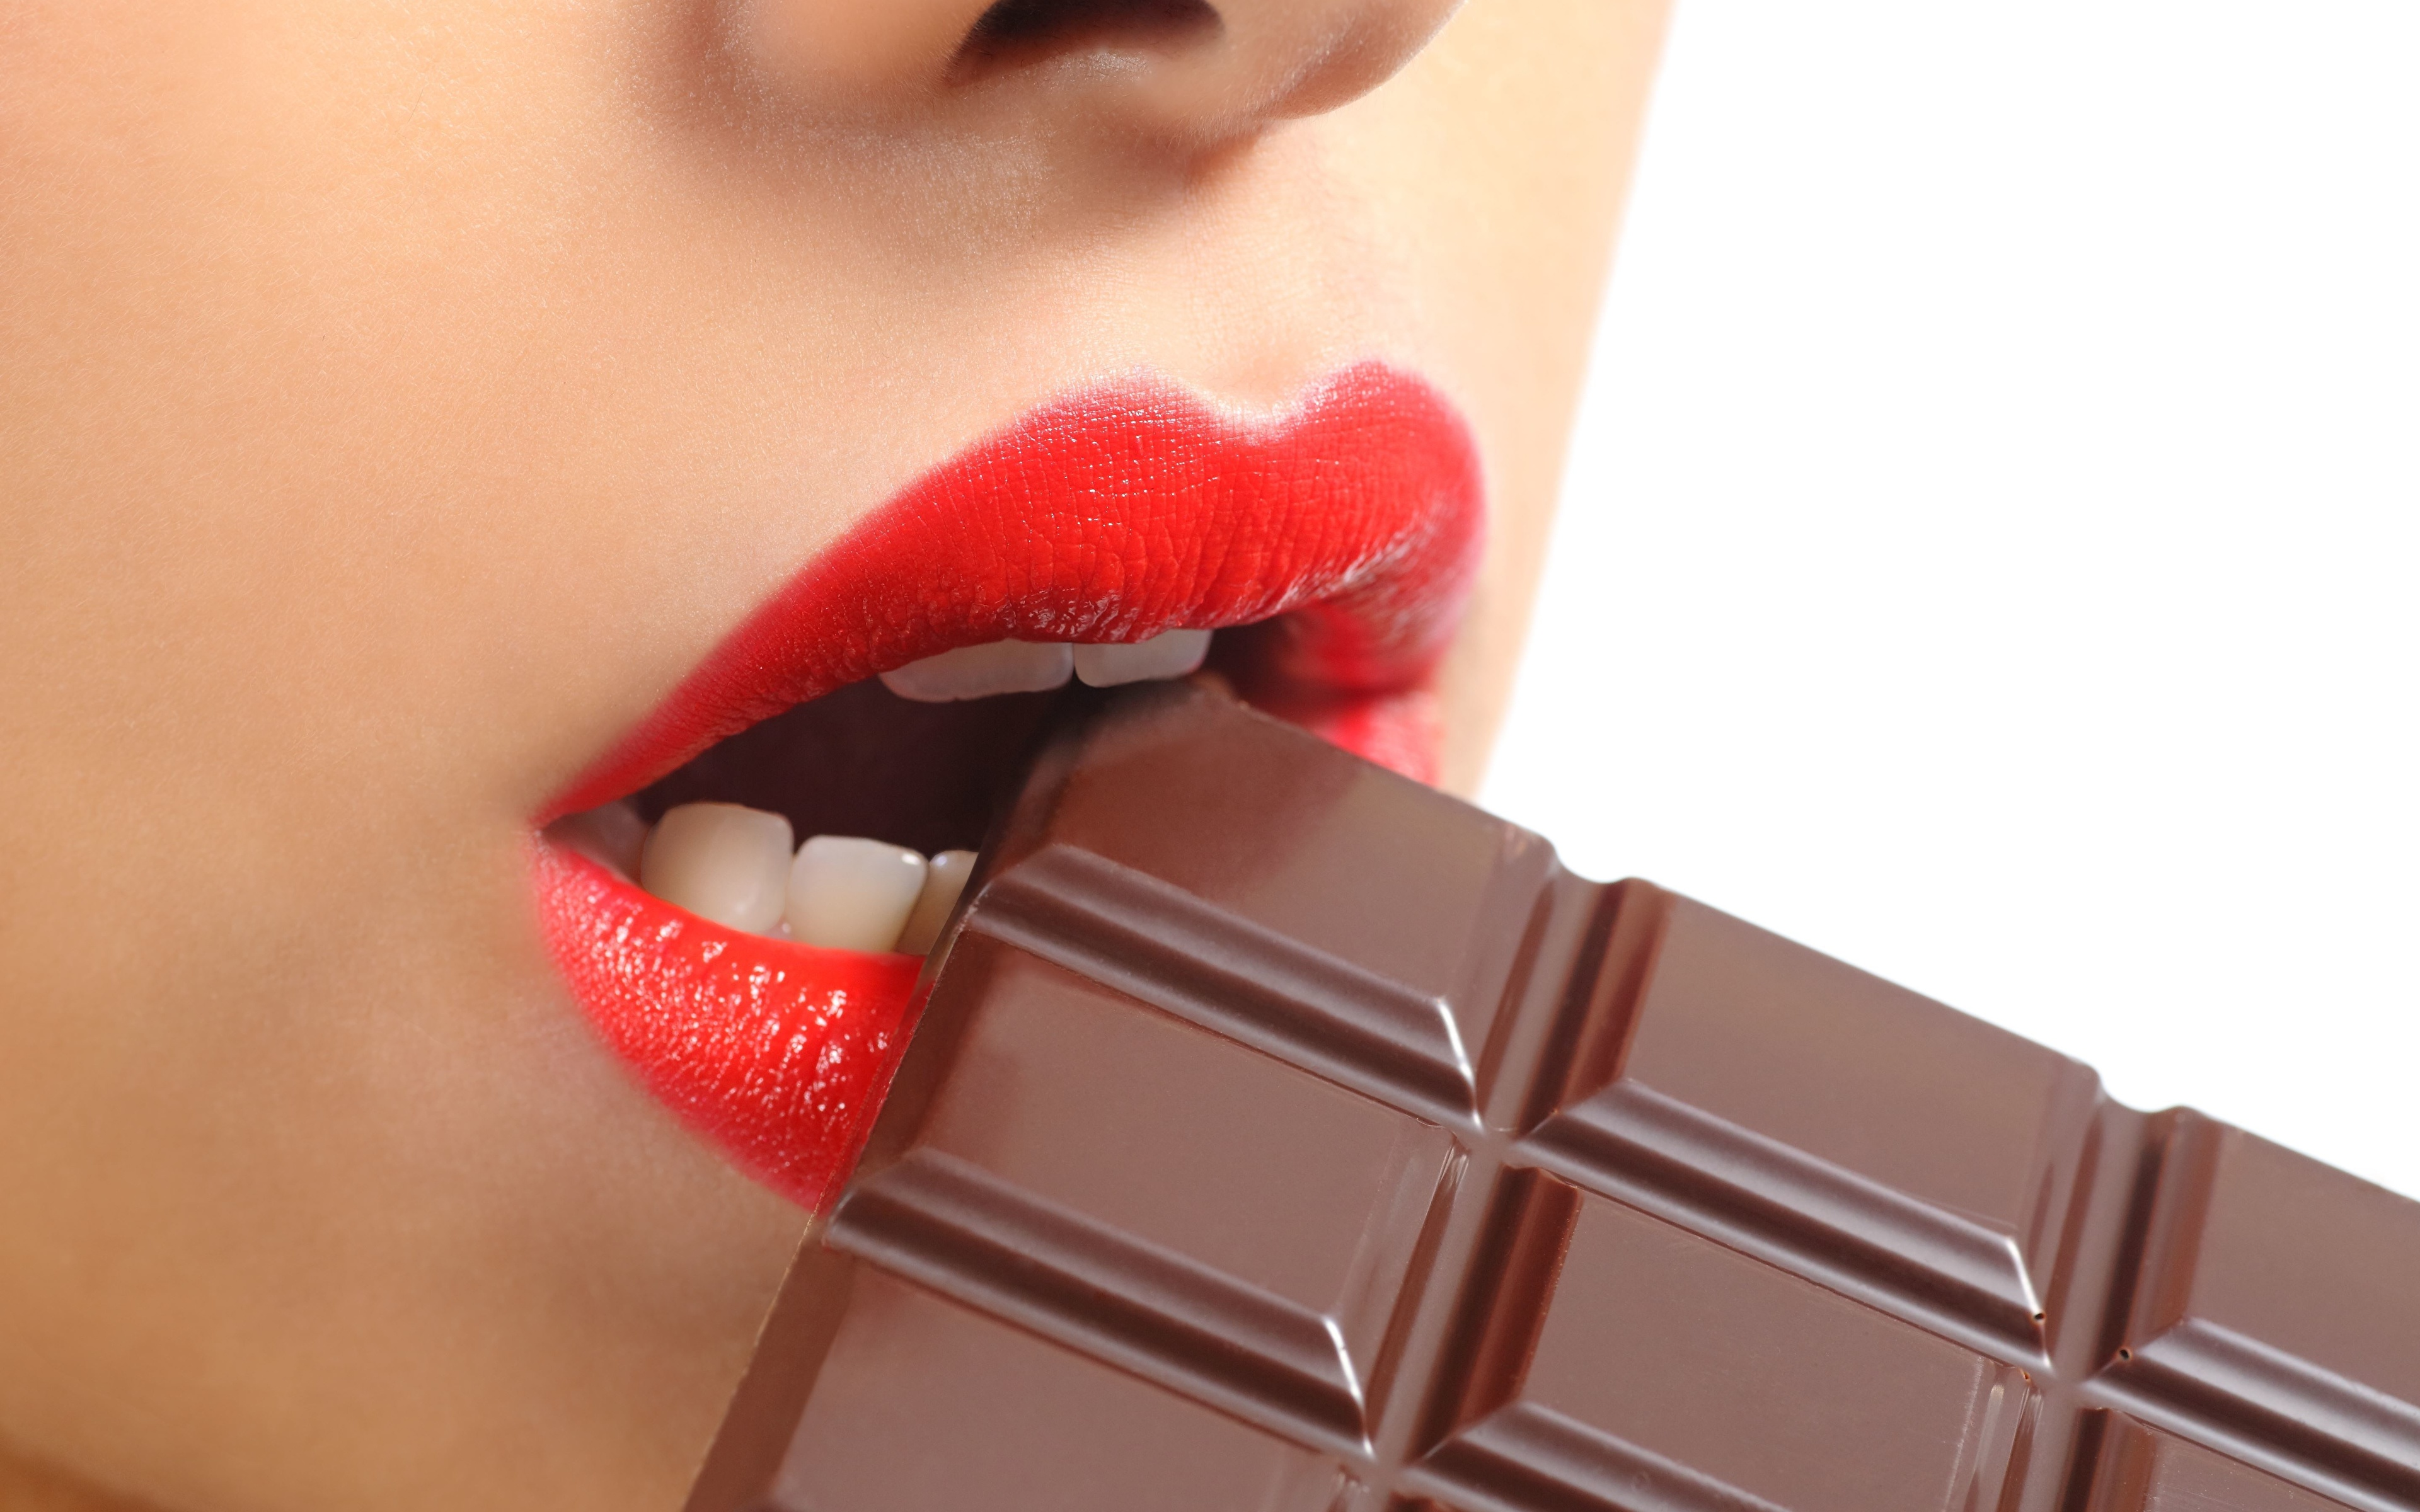 Lips_Chocolate_Teeth_505539_3840x2400